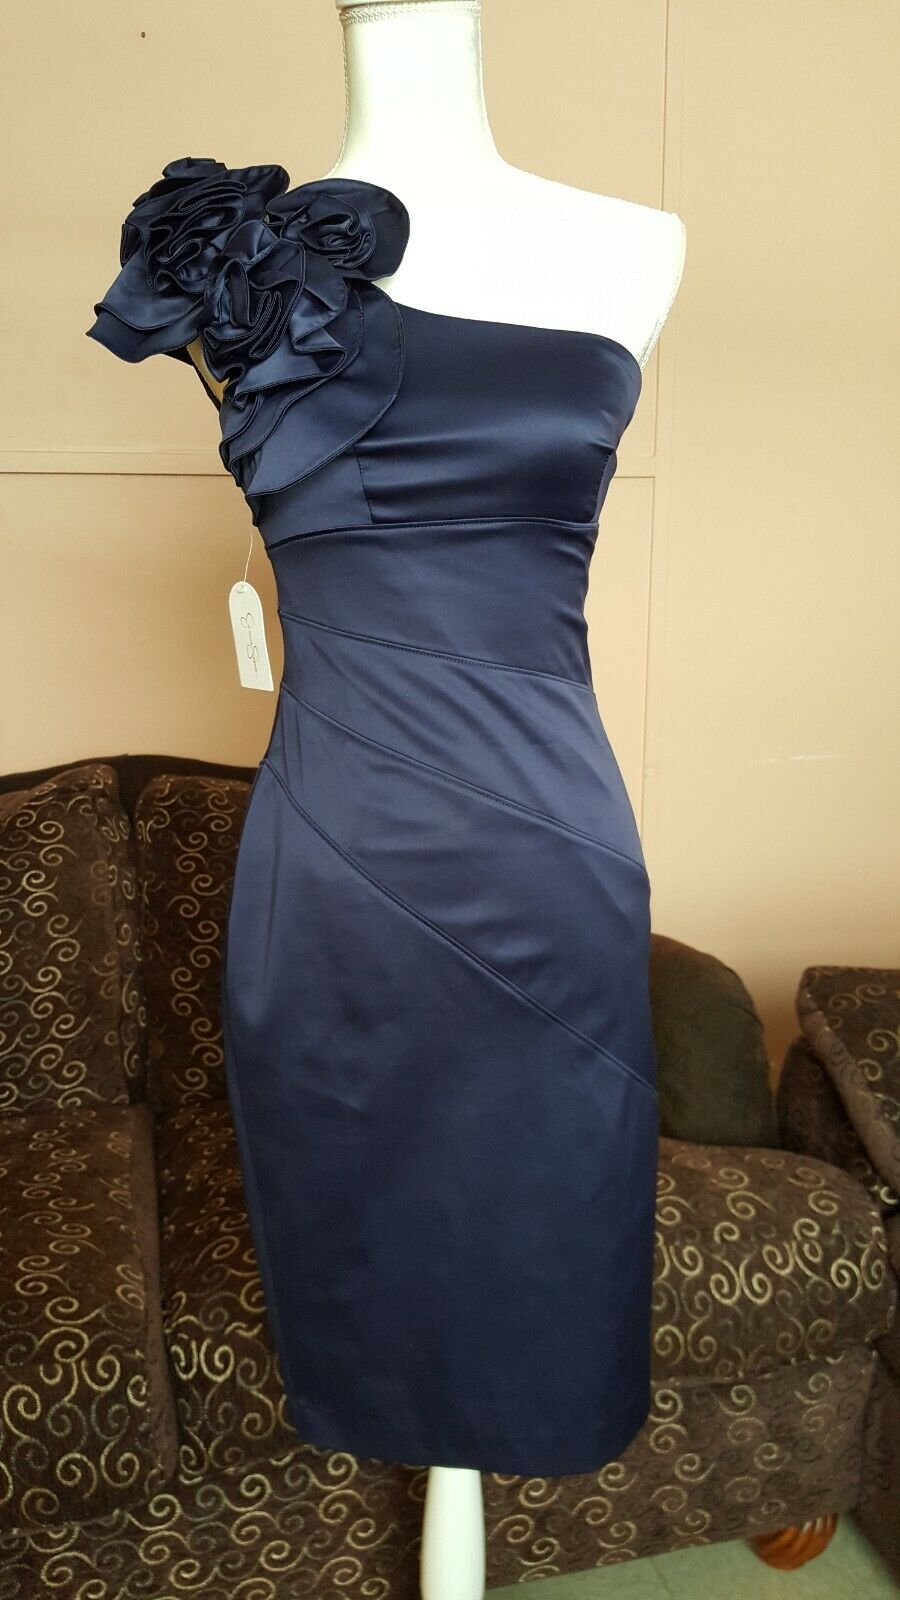 New Jessica Simpson Navy Sleeveless Floral Embossed Embossed Embossed Dress Size 2 d1fd20